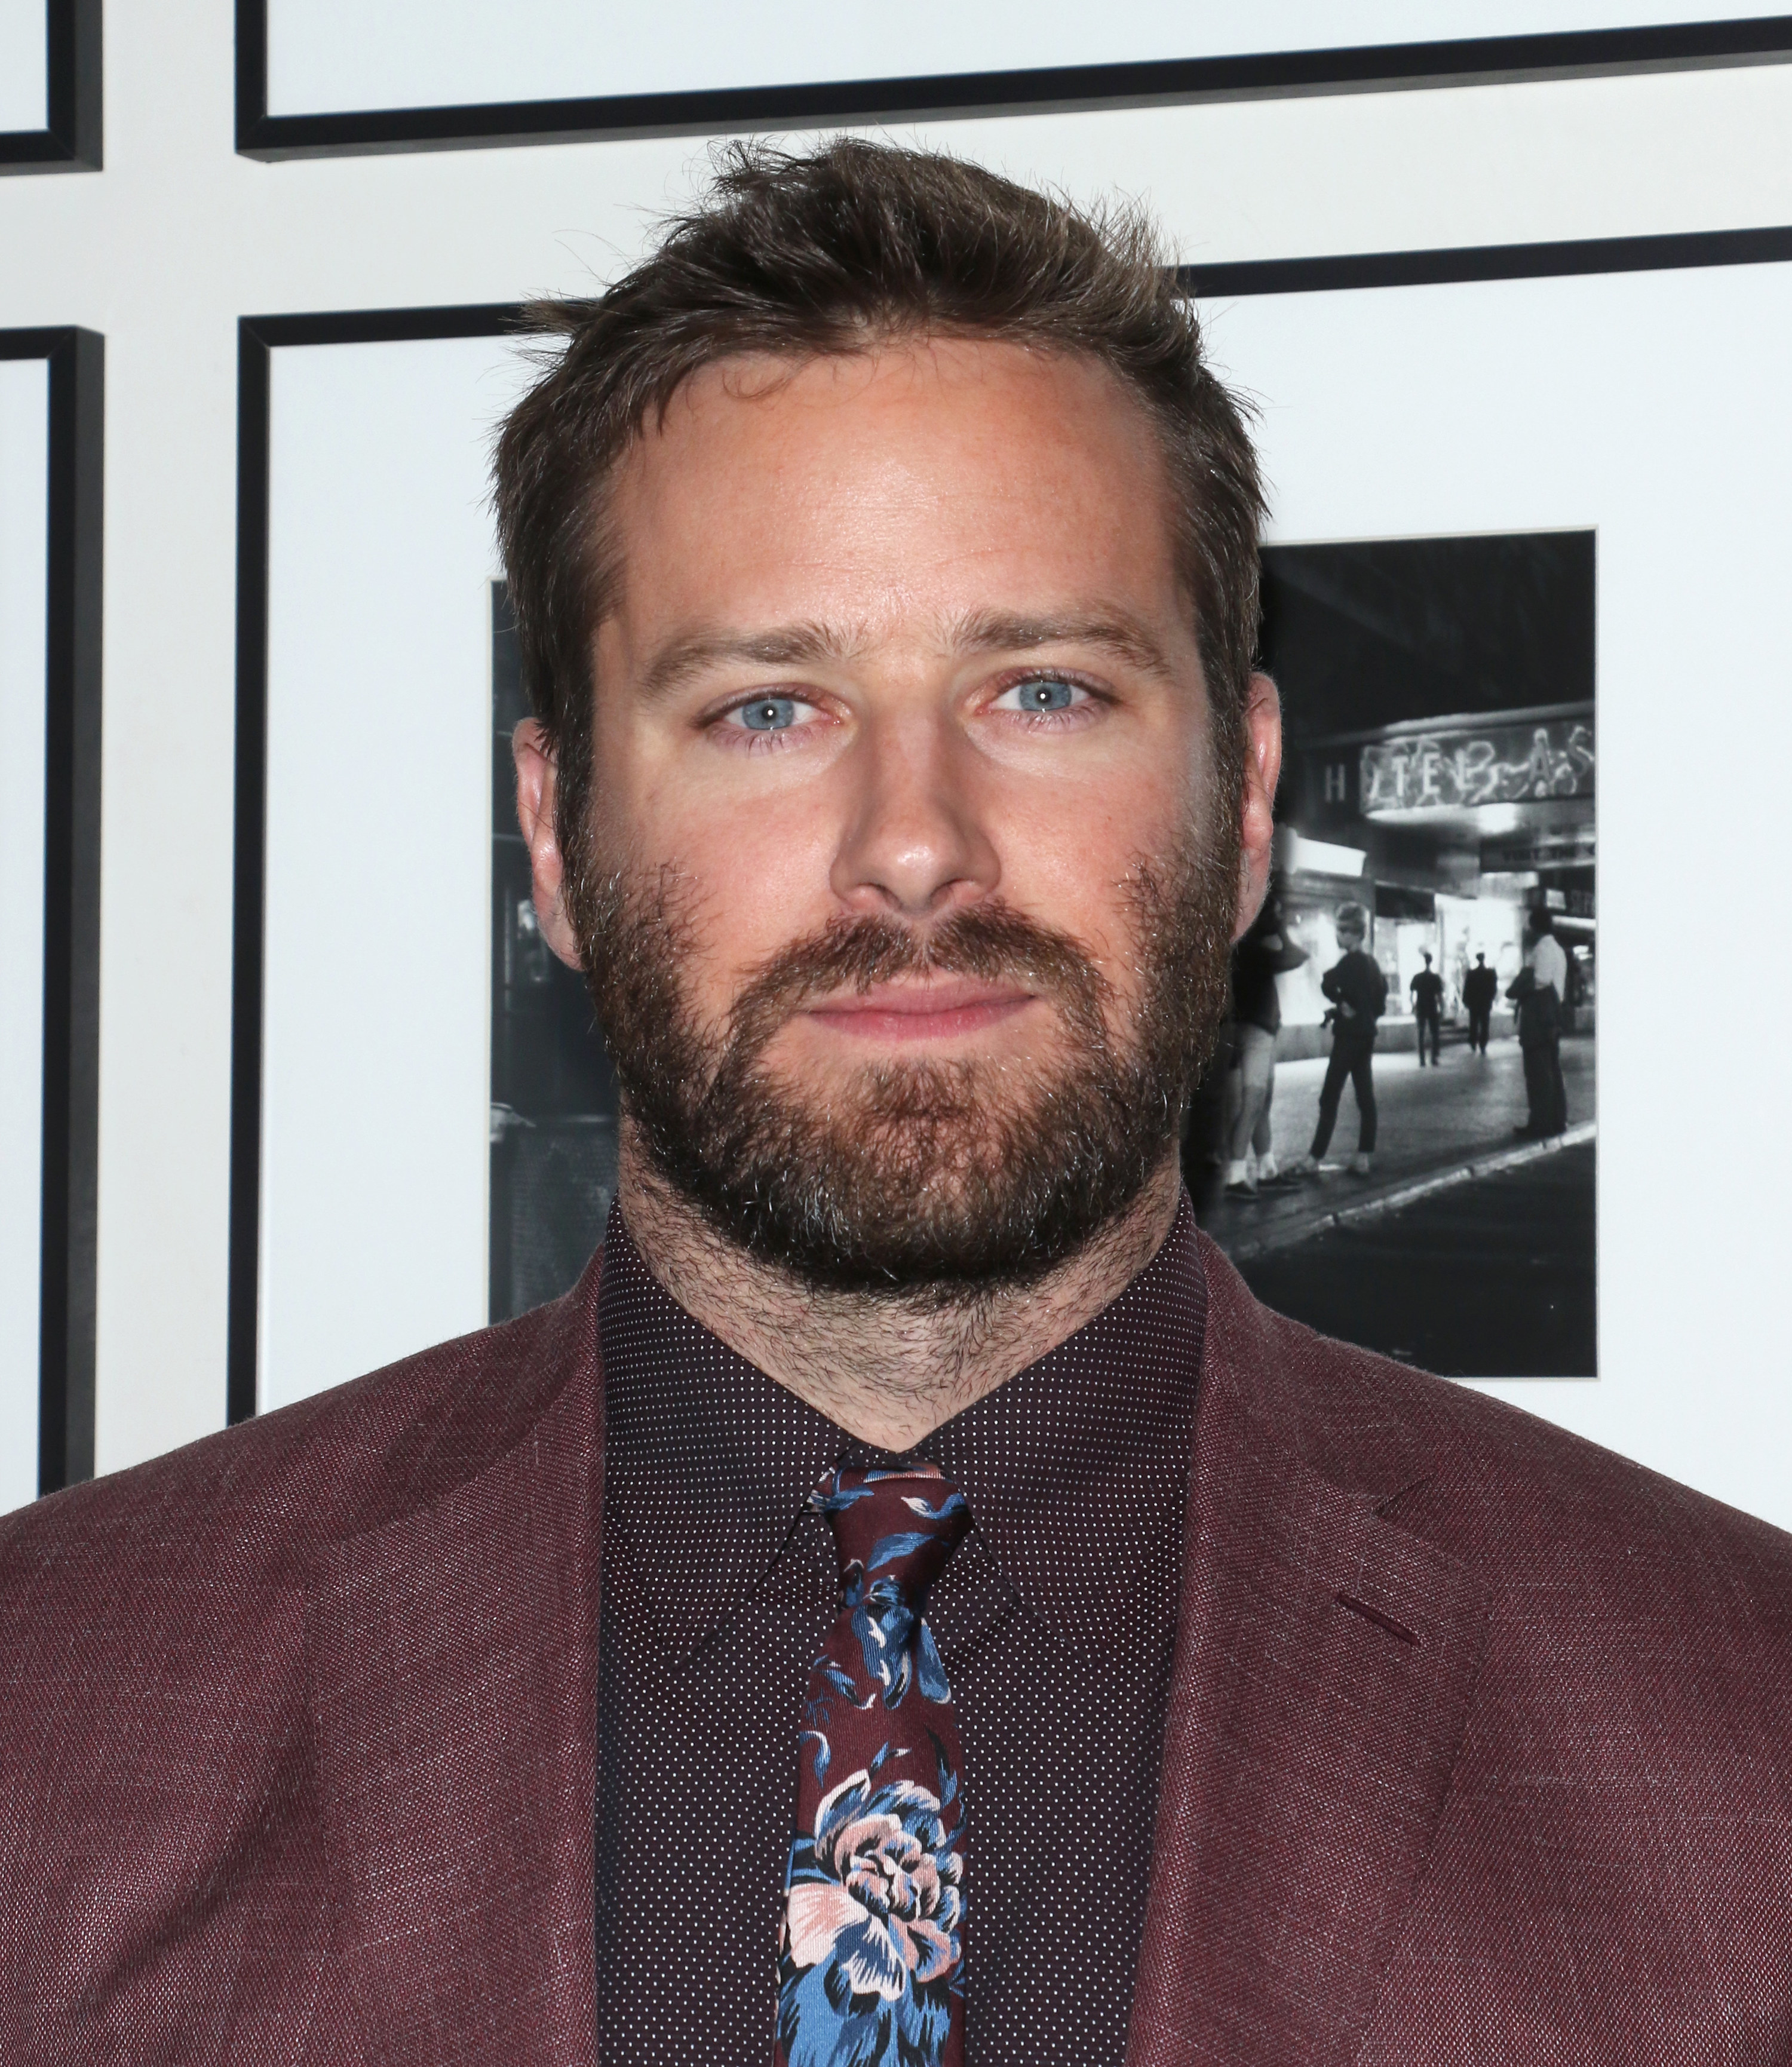 Hammer wears a suit with a patterned button-down and tie at the New York screening afterparty for Hotel Mumbai